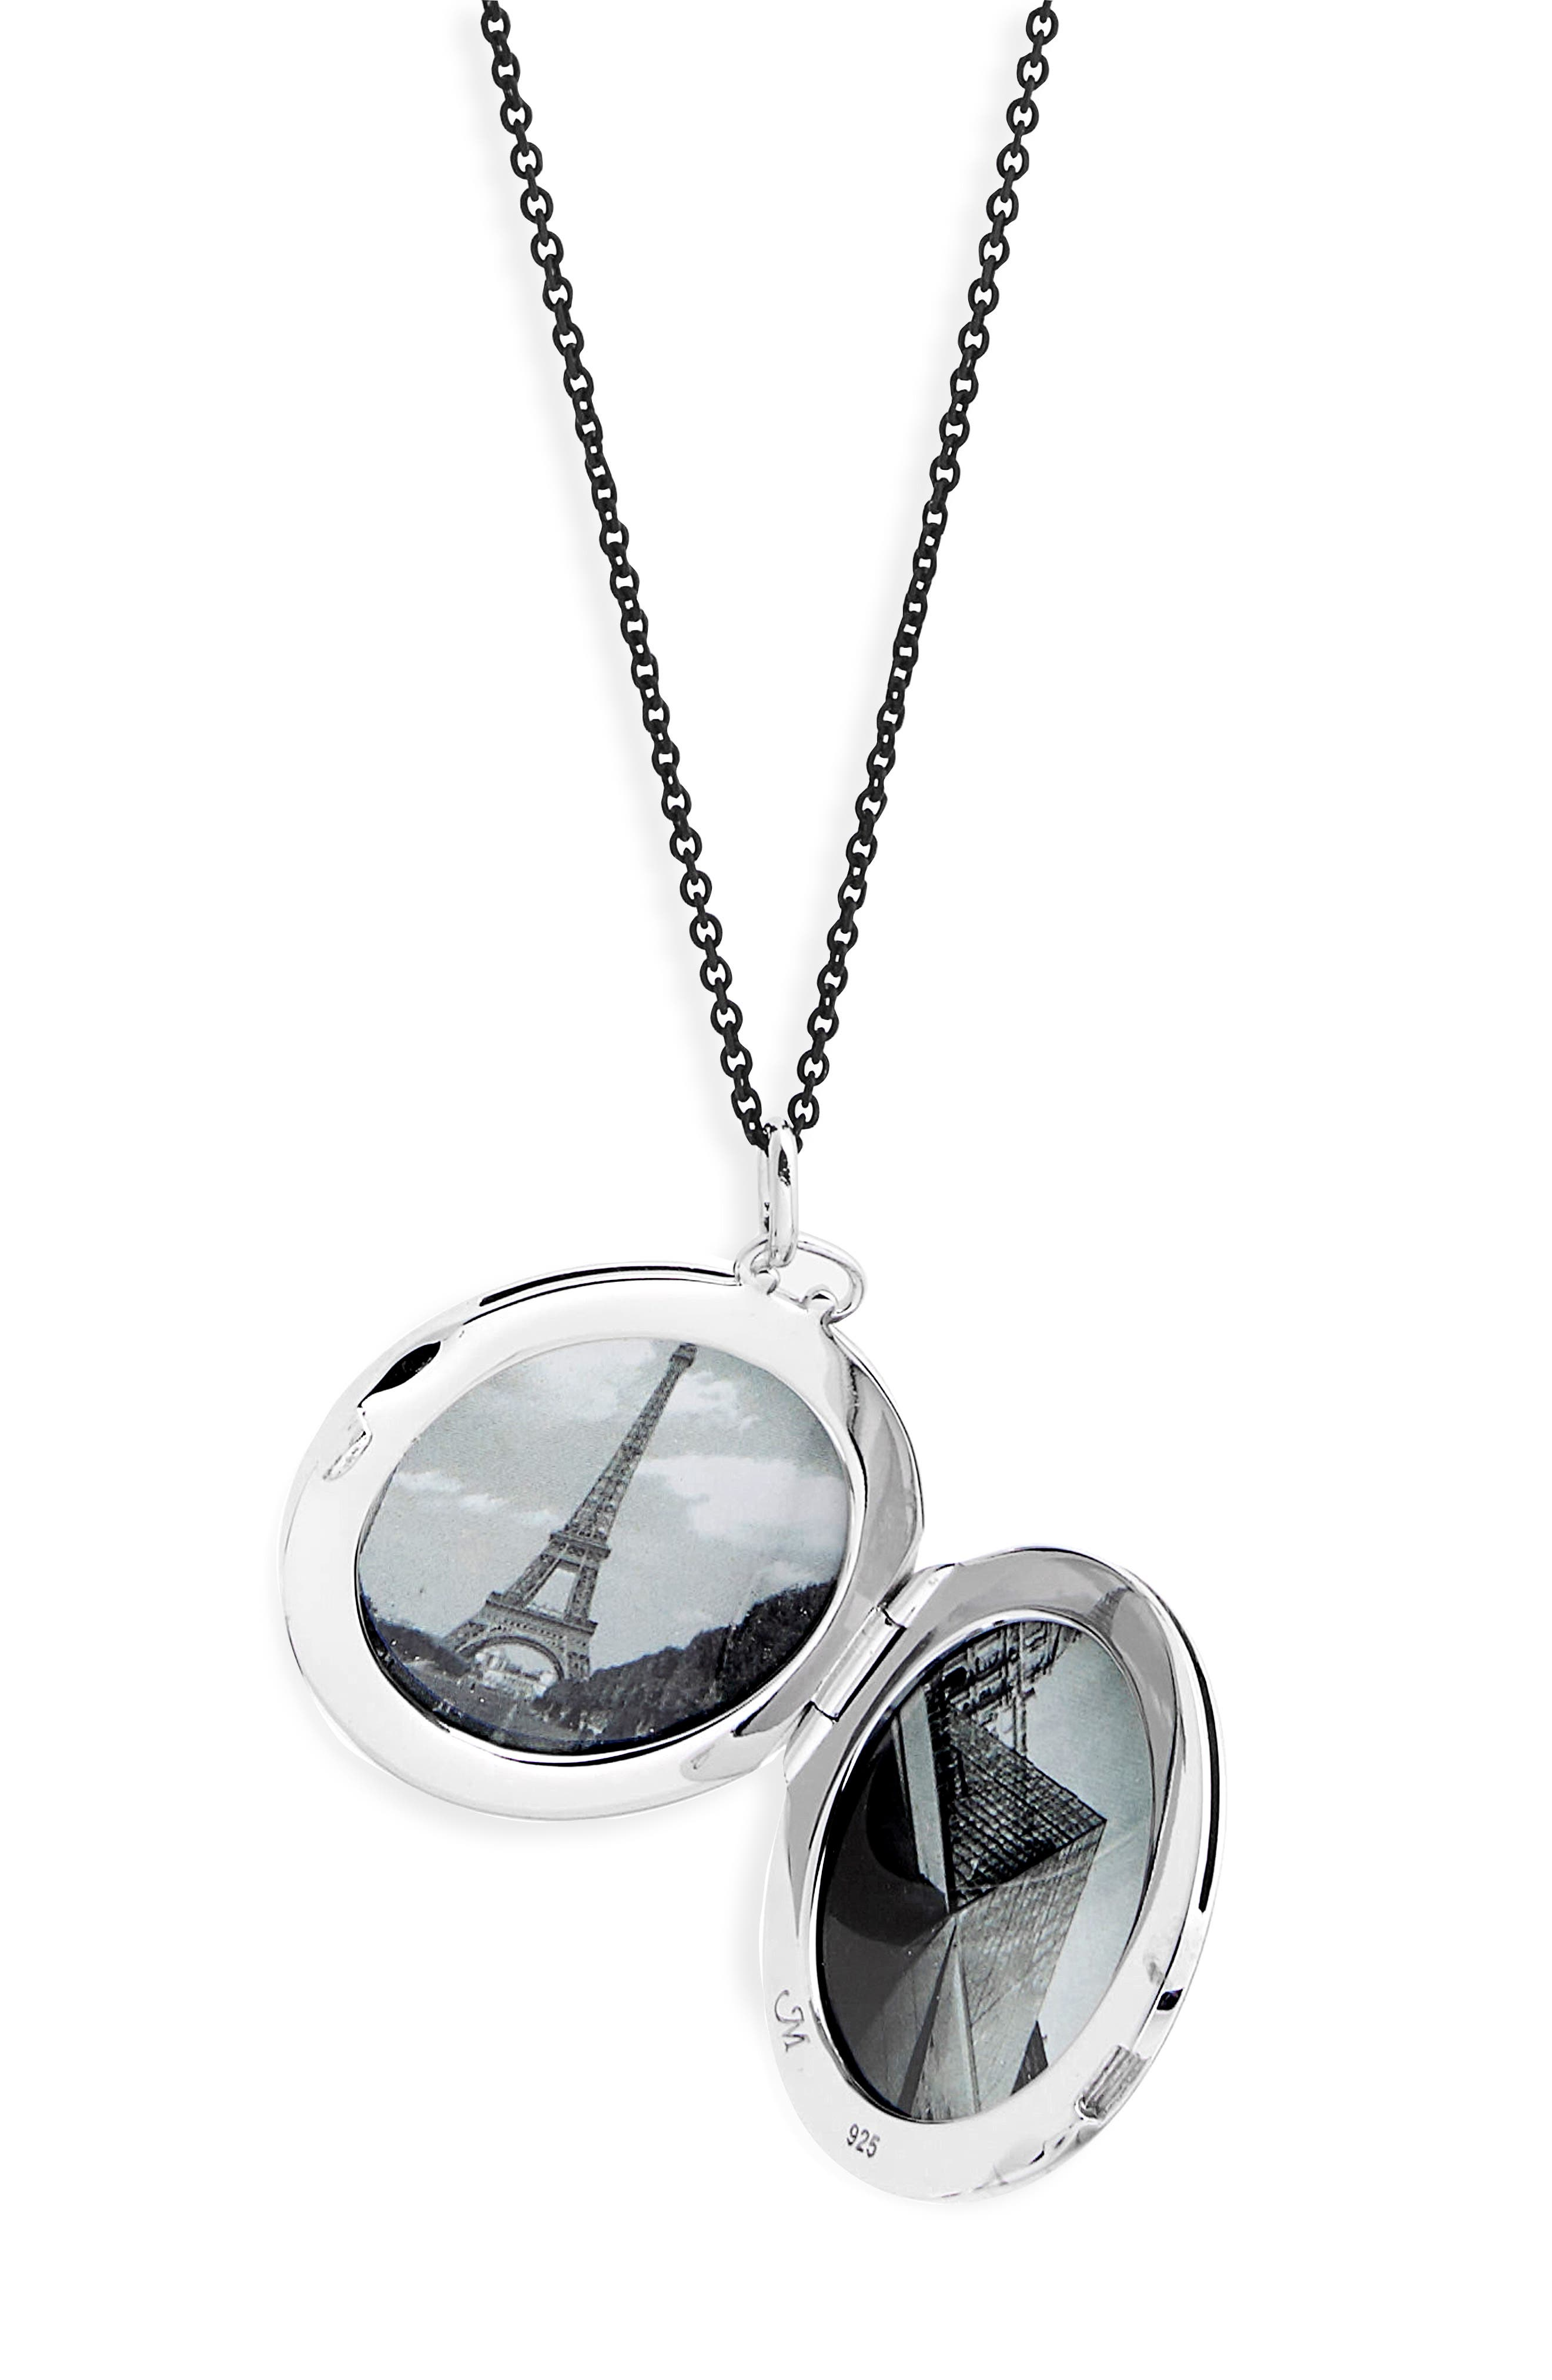 Round Dome Locket Necklace,                             Alternate thumbnail 3, color,                             STERLING SILVER/ BLACK STEEL